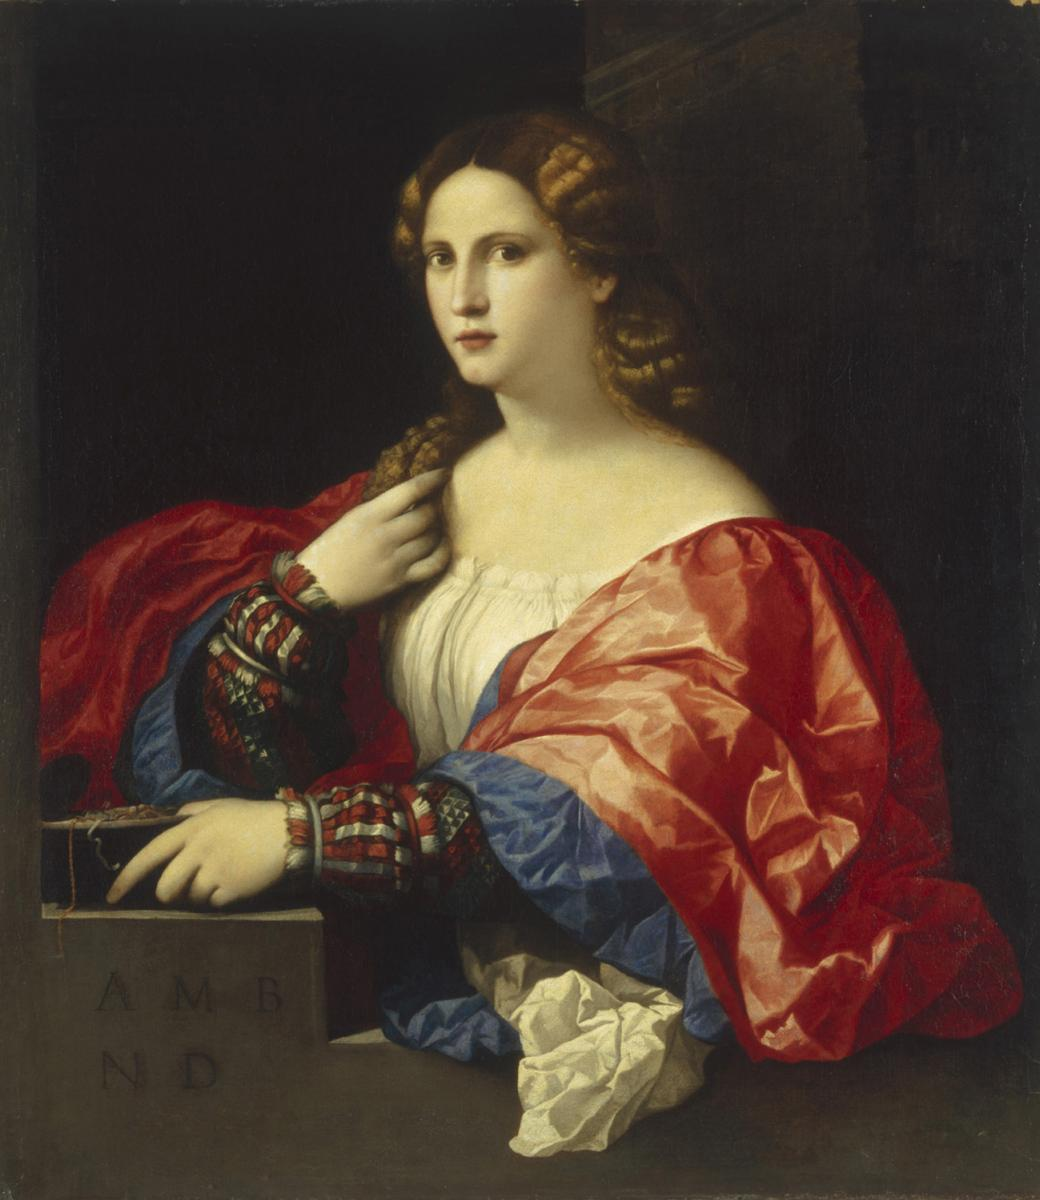 At 9pm tonight, @wisemandebbie explores the great achievements made by female composers over the centuries. Well be featuring music by Francesca Caccini – the most highly paid performer and composer at the Medici court in the early 17th century. 🎶